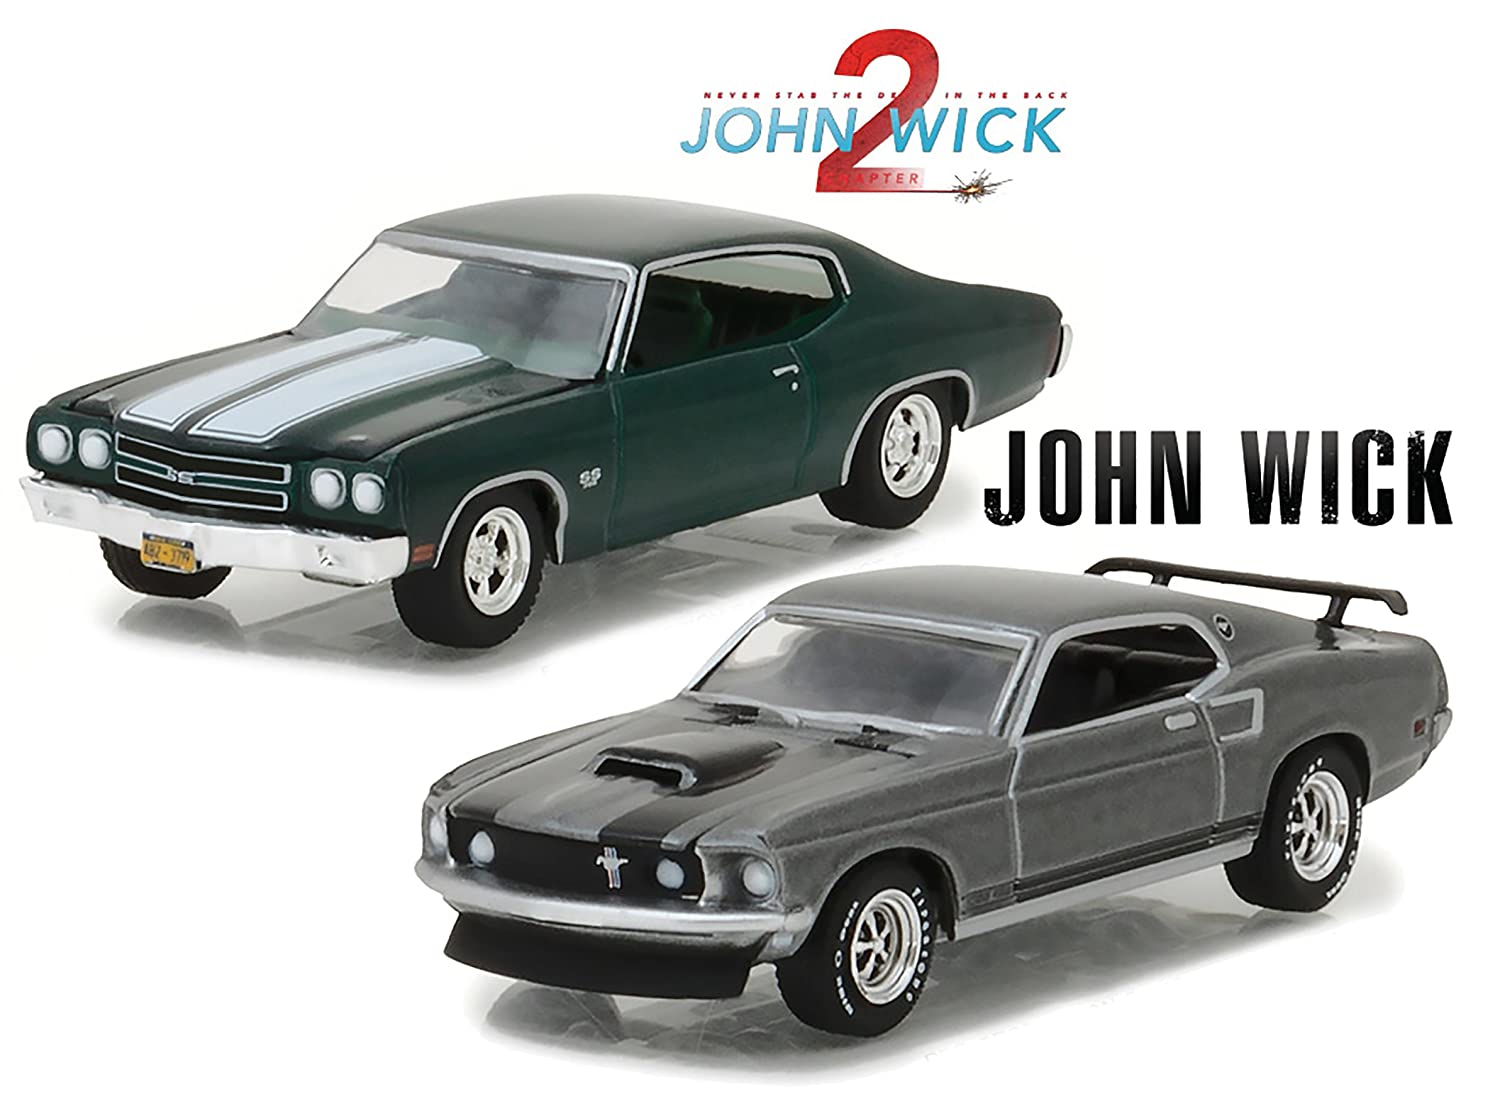 Greenlight 1969 Ford Mustang Boss 429 With 1970 Chevy Police Car Chevelle Ss 396 John Wick 1 2 64 Scale Diecast Bundle Toys Games